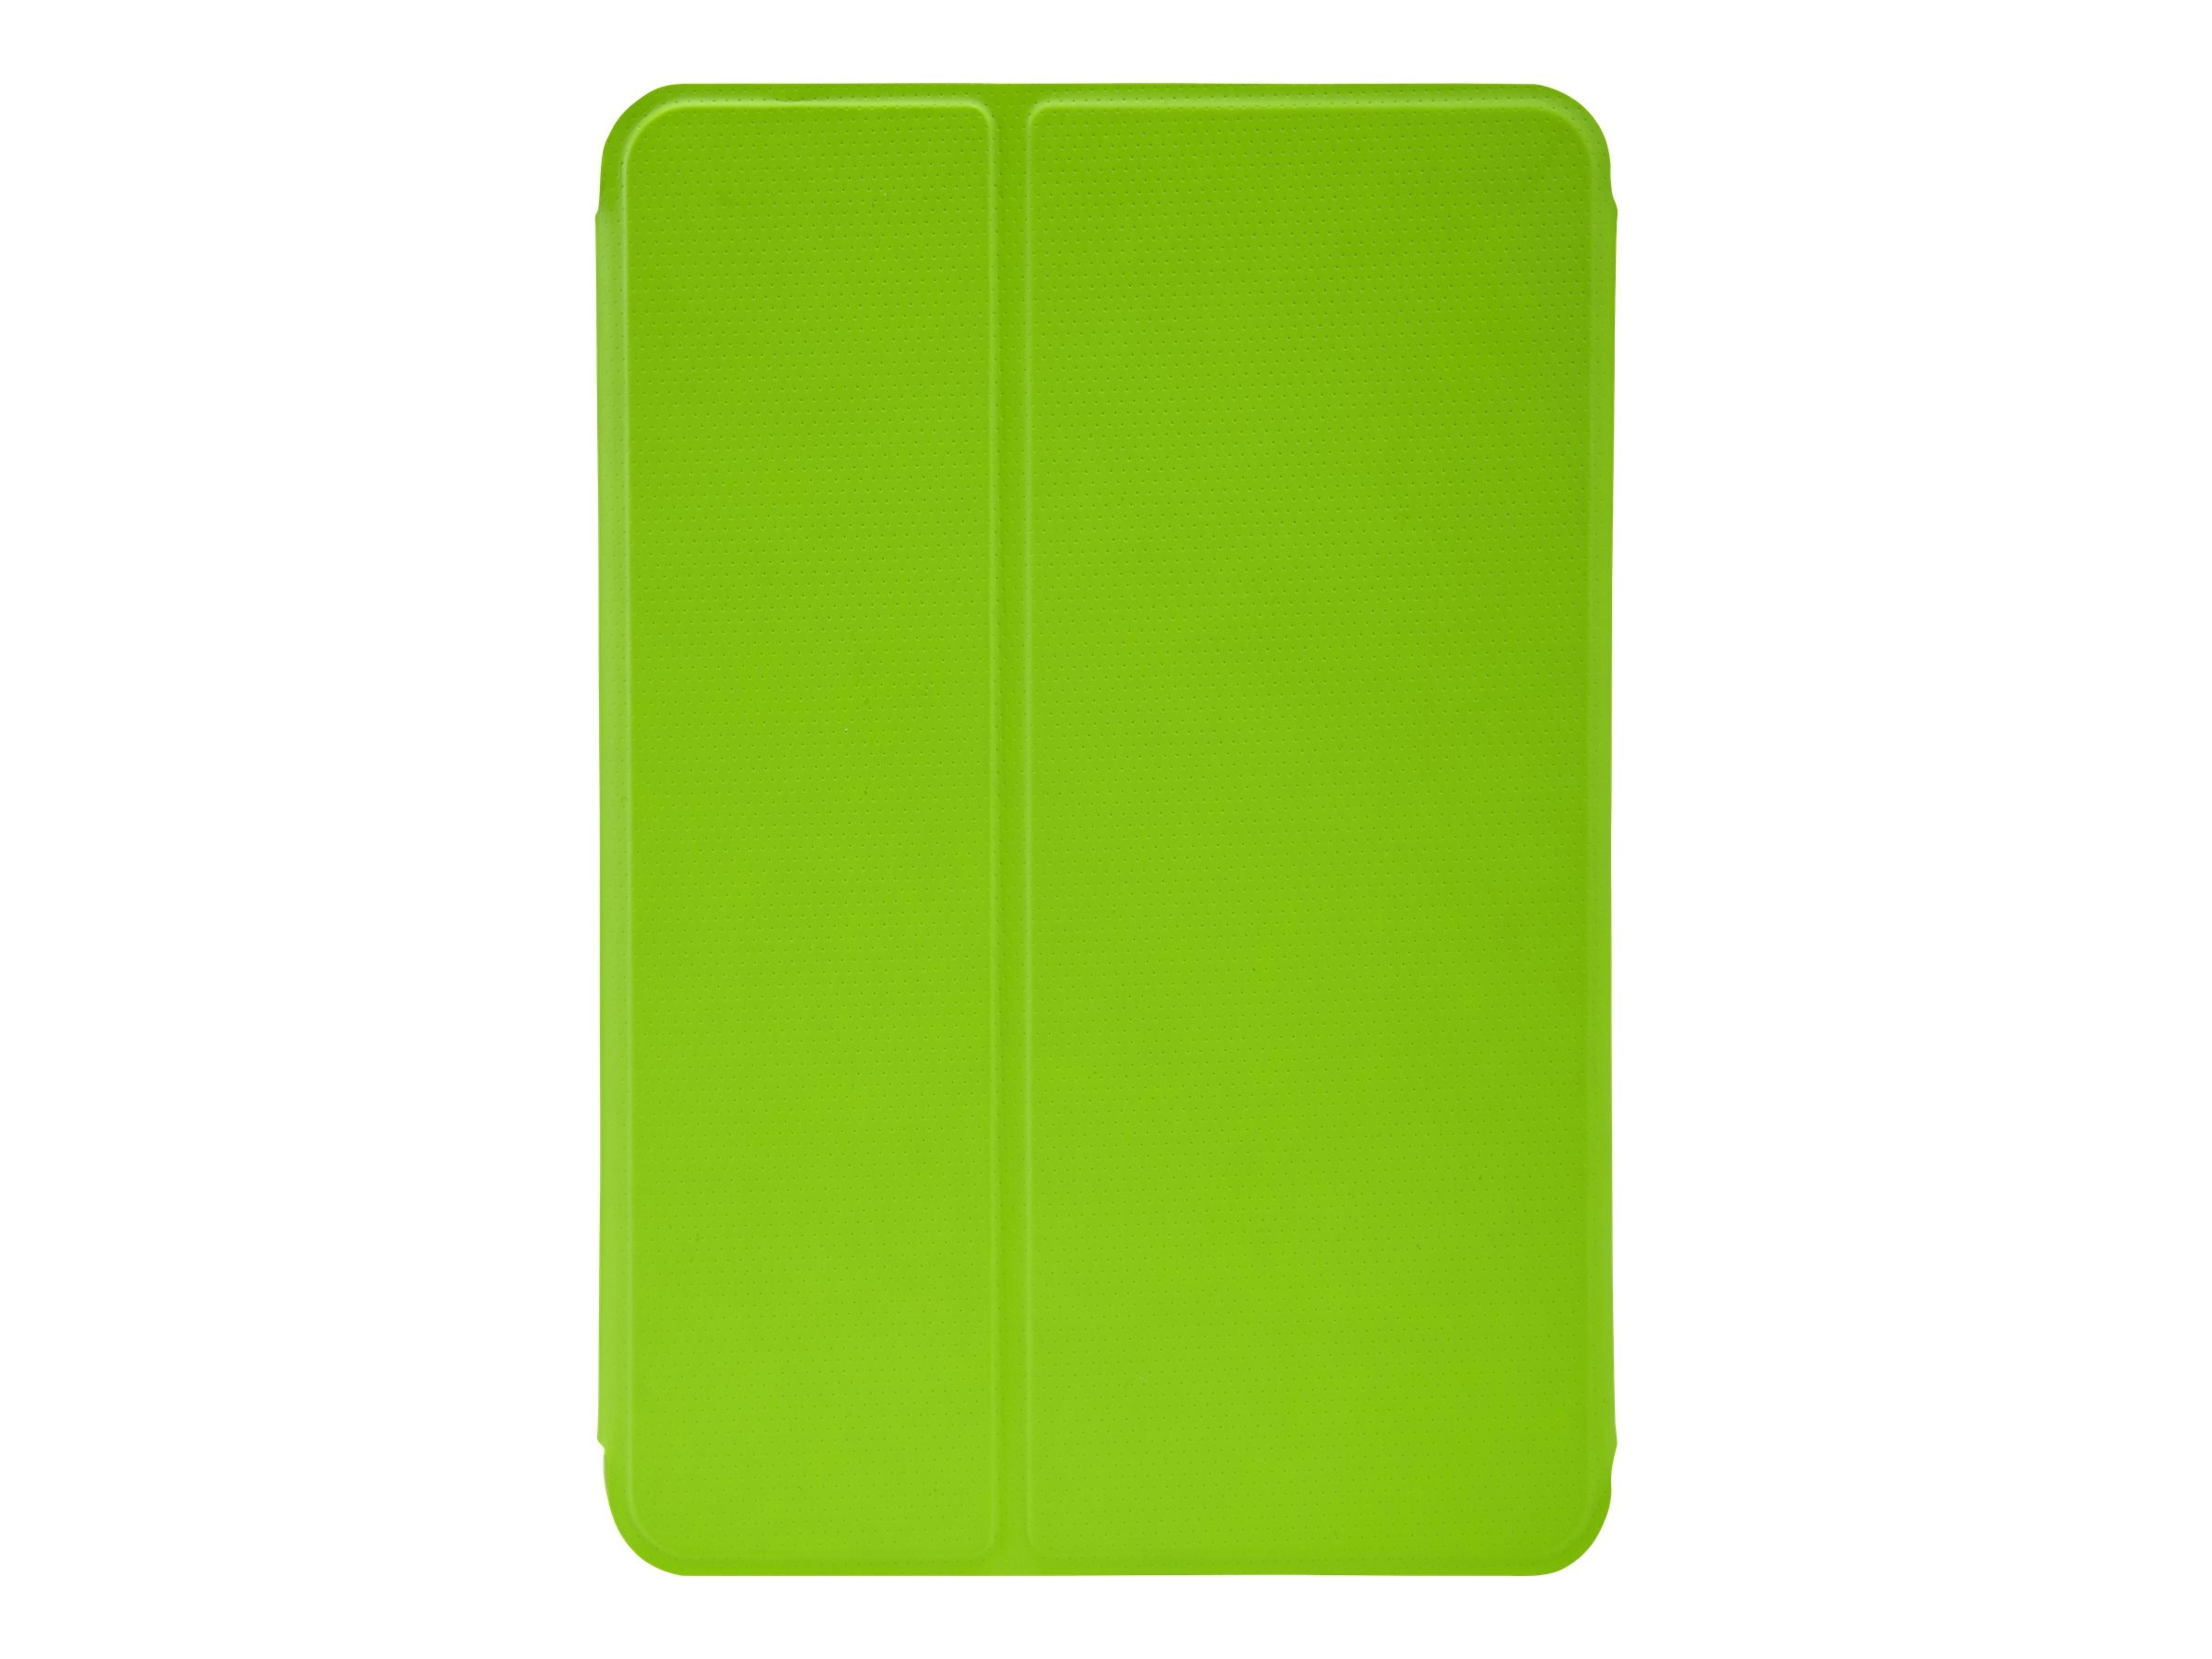 Case Logic SnapView Case for iPad mini 3, Lime Green, CSIE-2140LIMEGREEN, 23621248, Carrying Cases - Tablets & eReaders